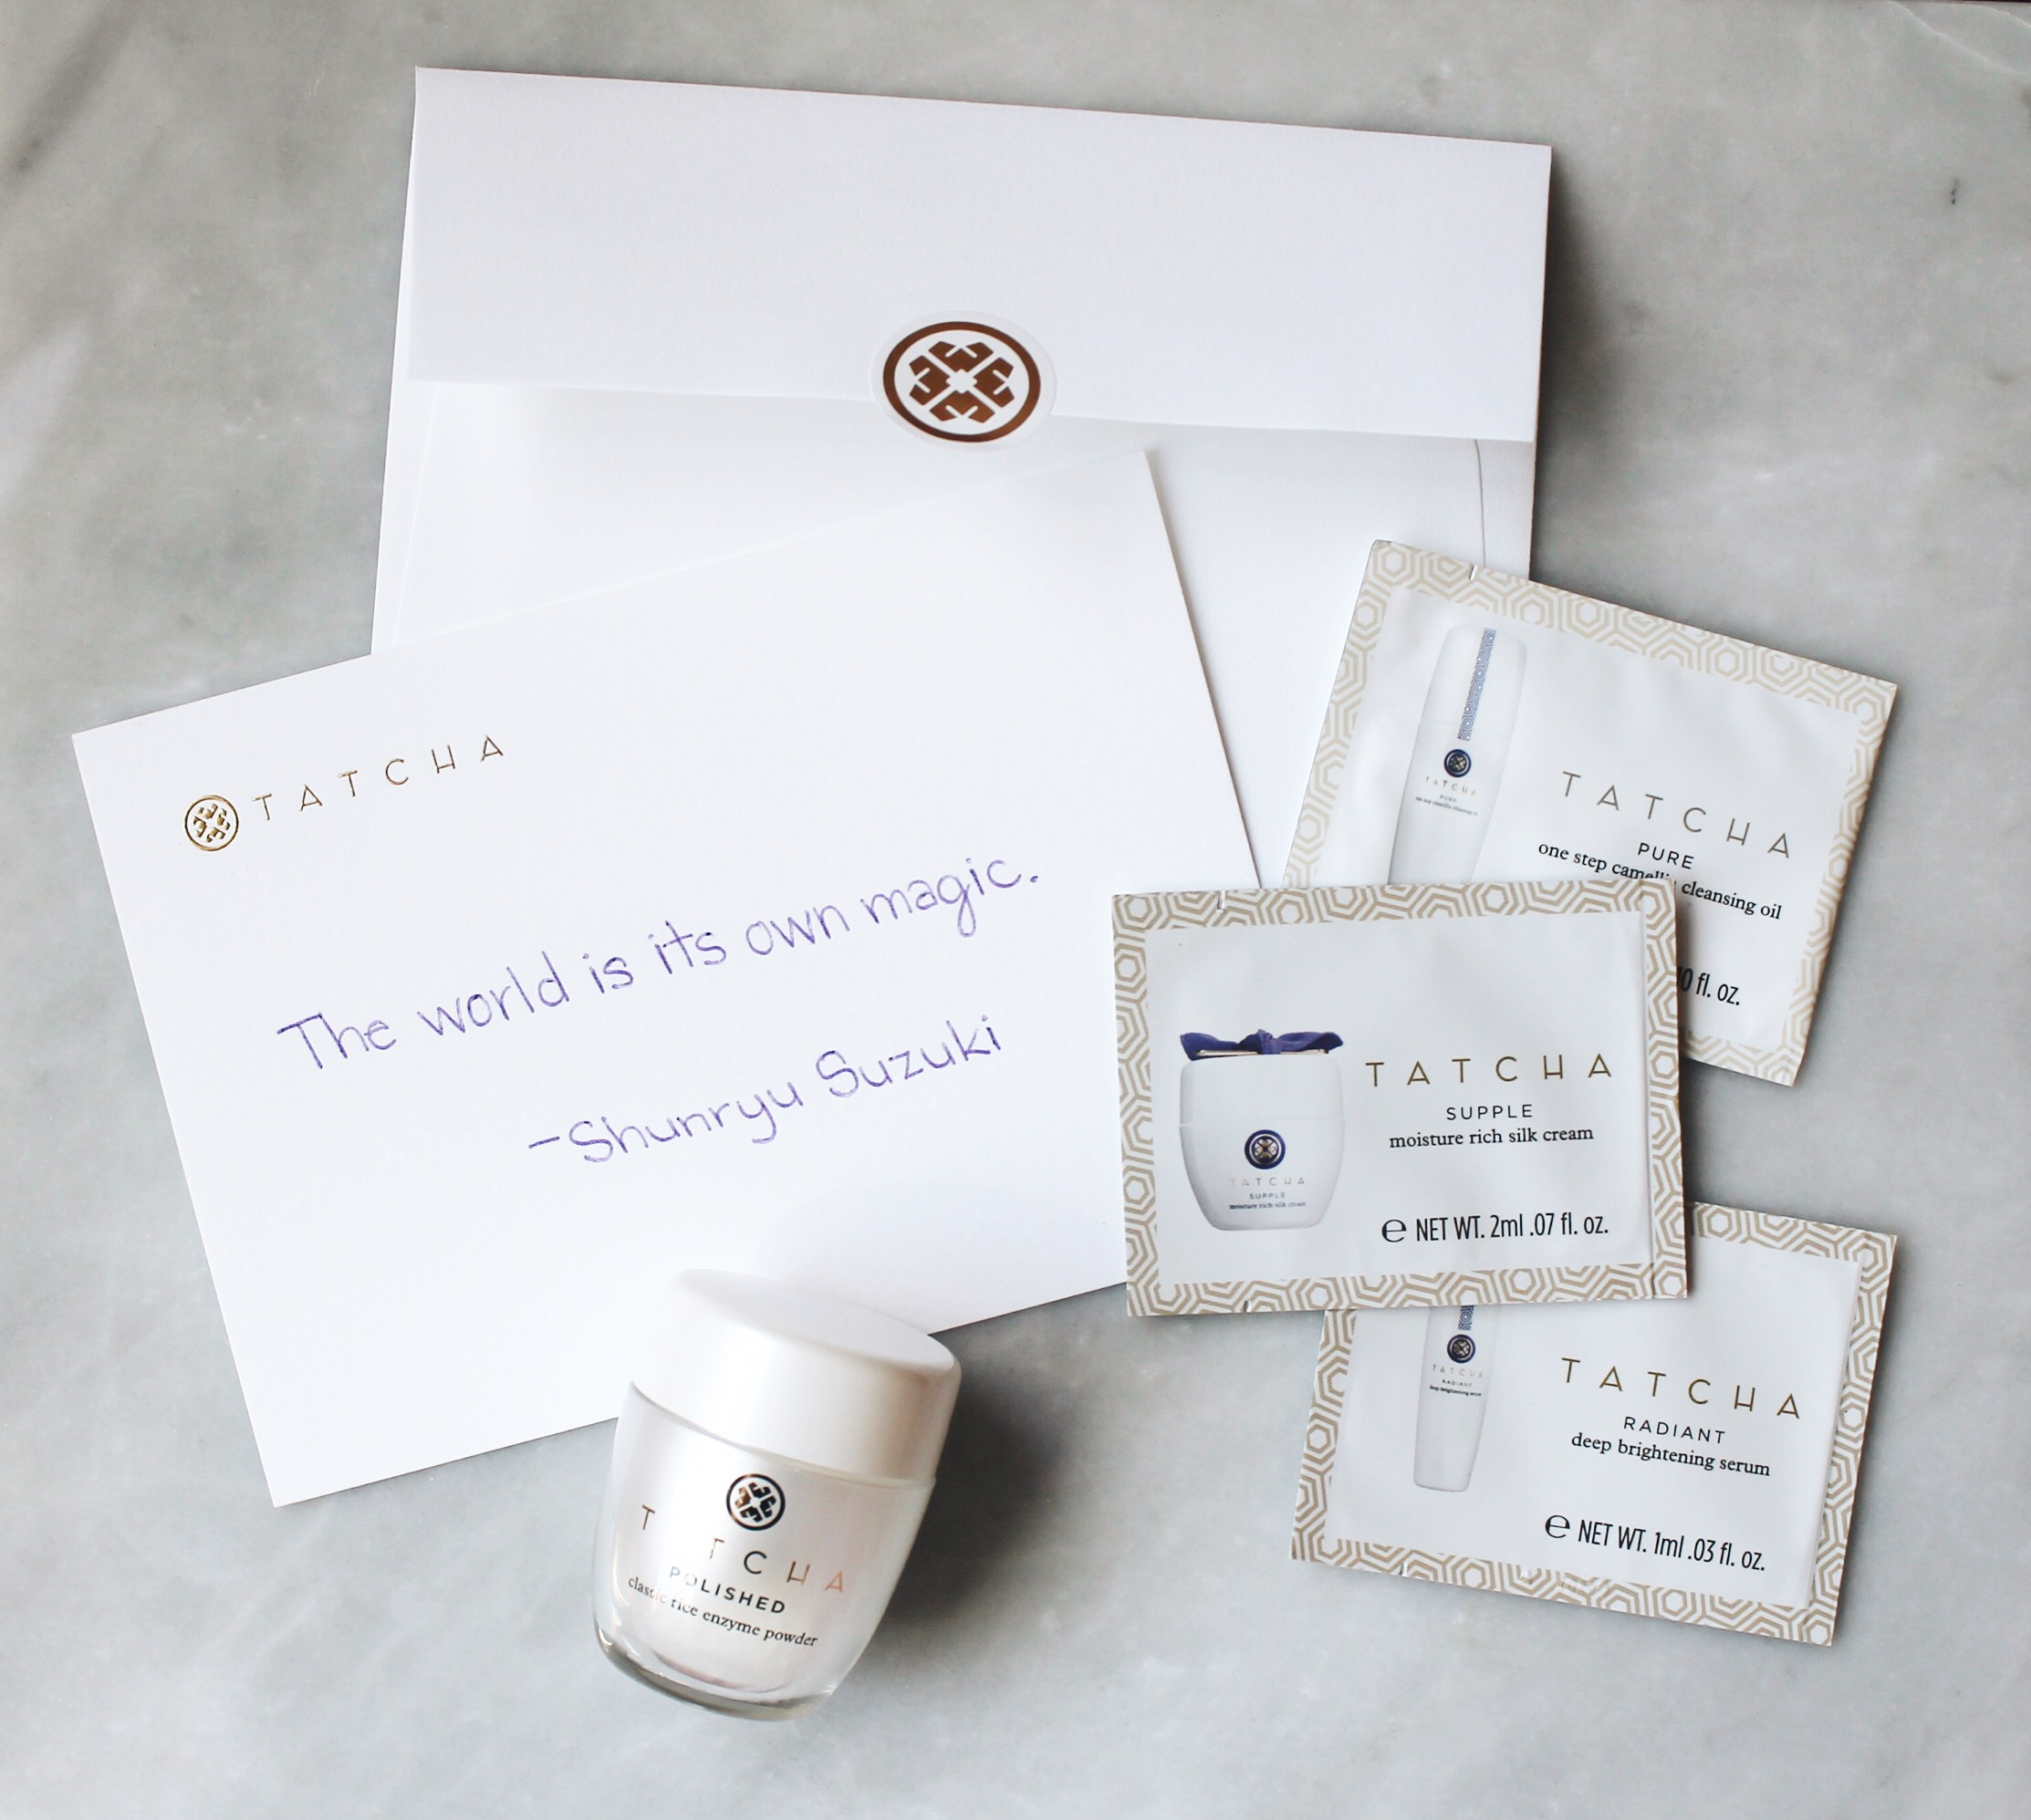 Unboxing My Order From Tatcha, Tatcha Dewy Skin Mist, Tatcha Rice Enzyme Powder, Tatcha Order, Tatcha Beauty, Sephora, Order Unboxing, Tatcha Letter, Tatcha Package, Tatcha Samples, Tatcha Sample Packettes, Tatcha Sample Packets